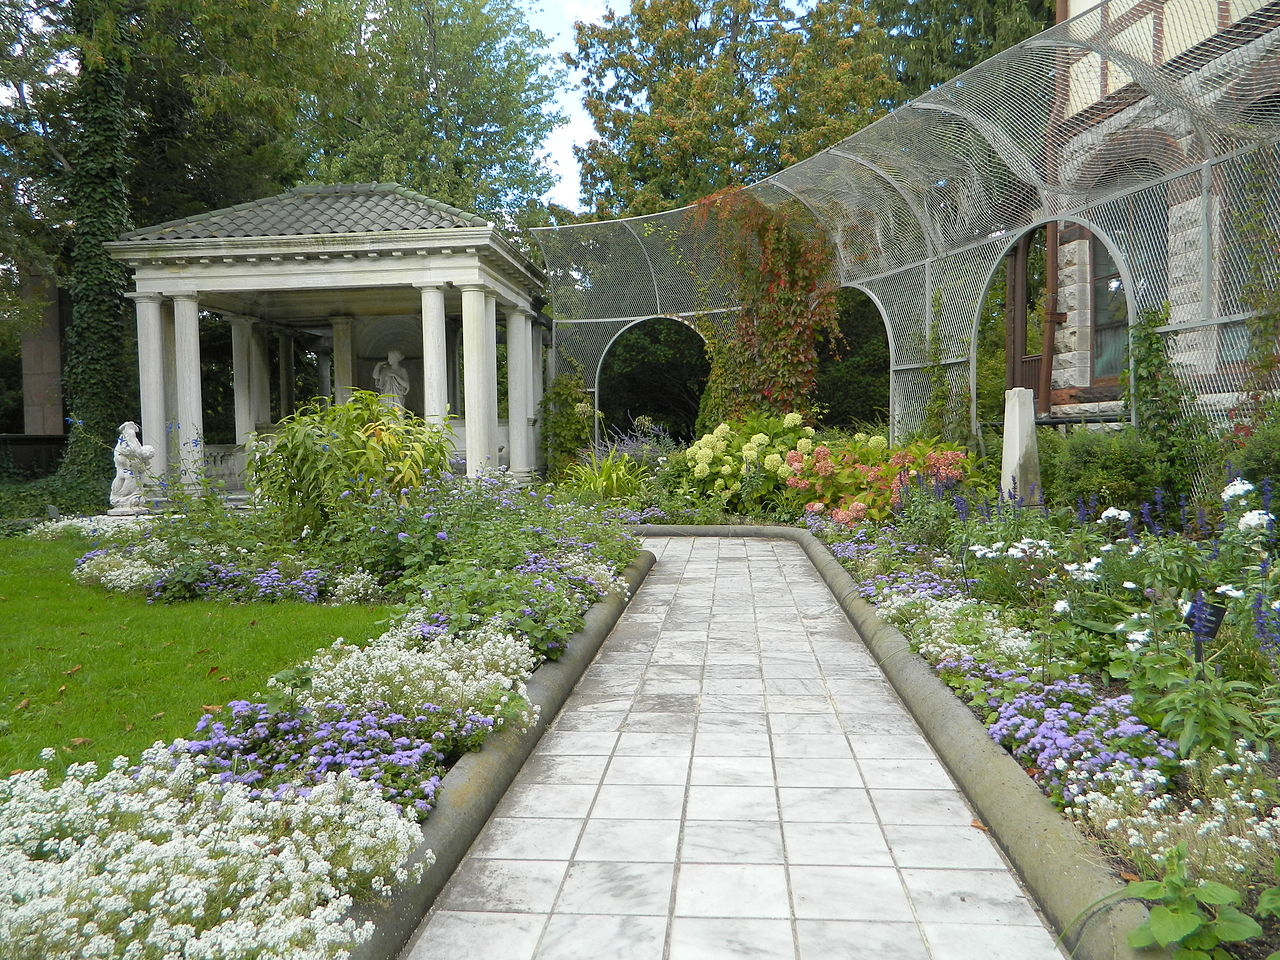 The estate features several gardens.